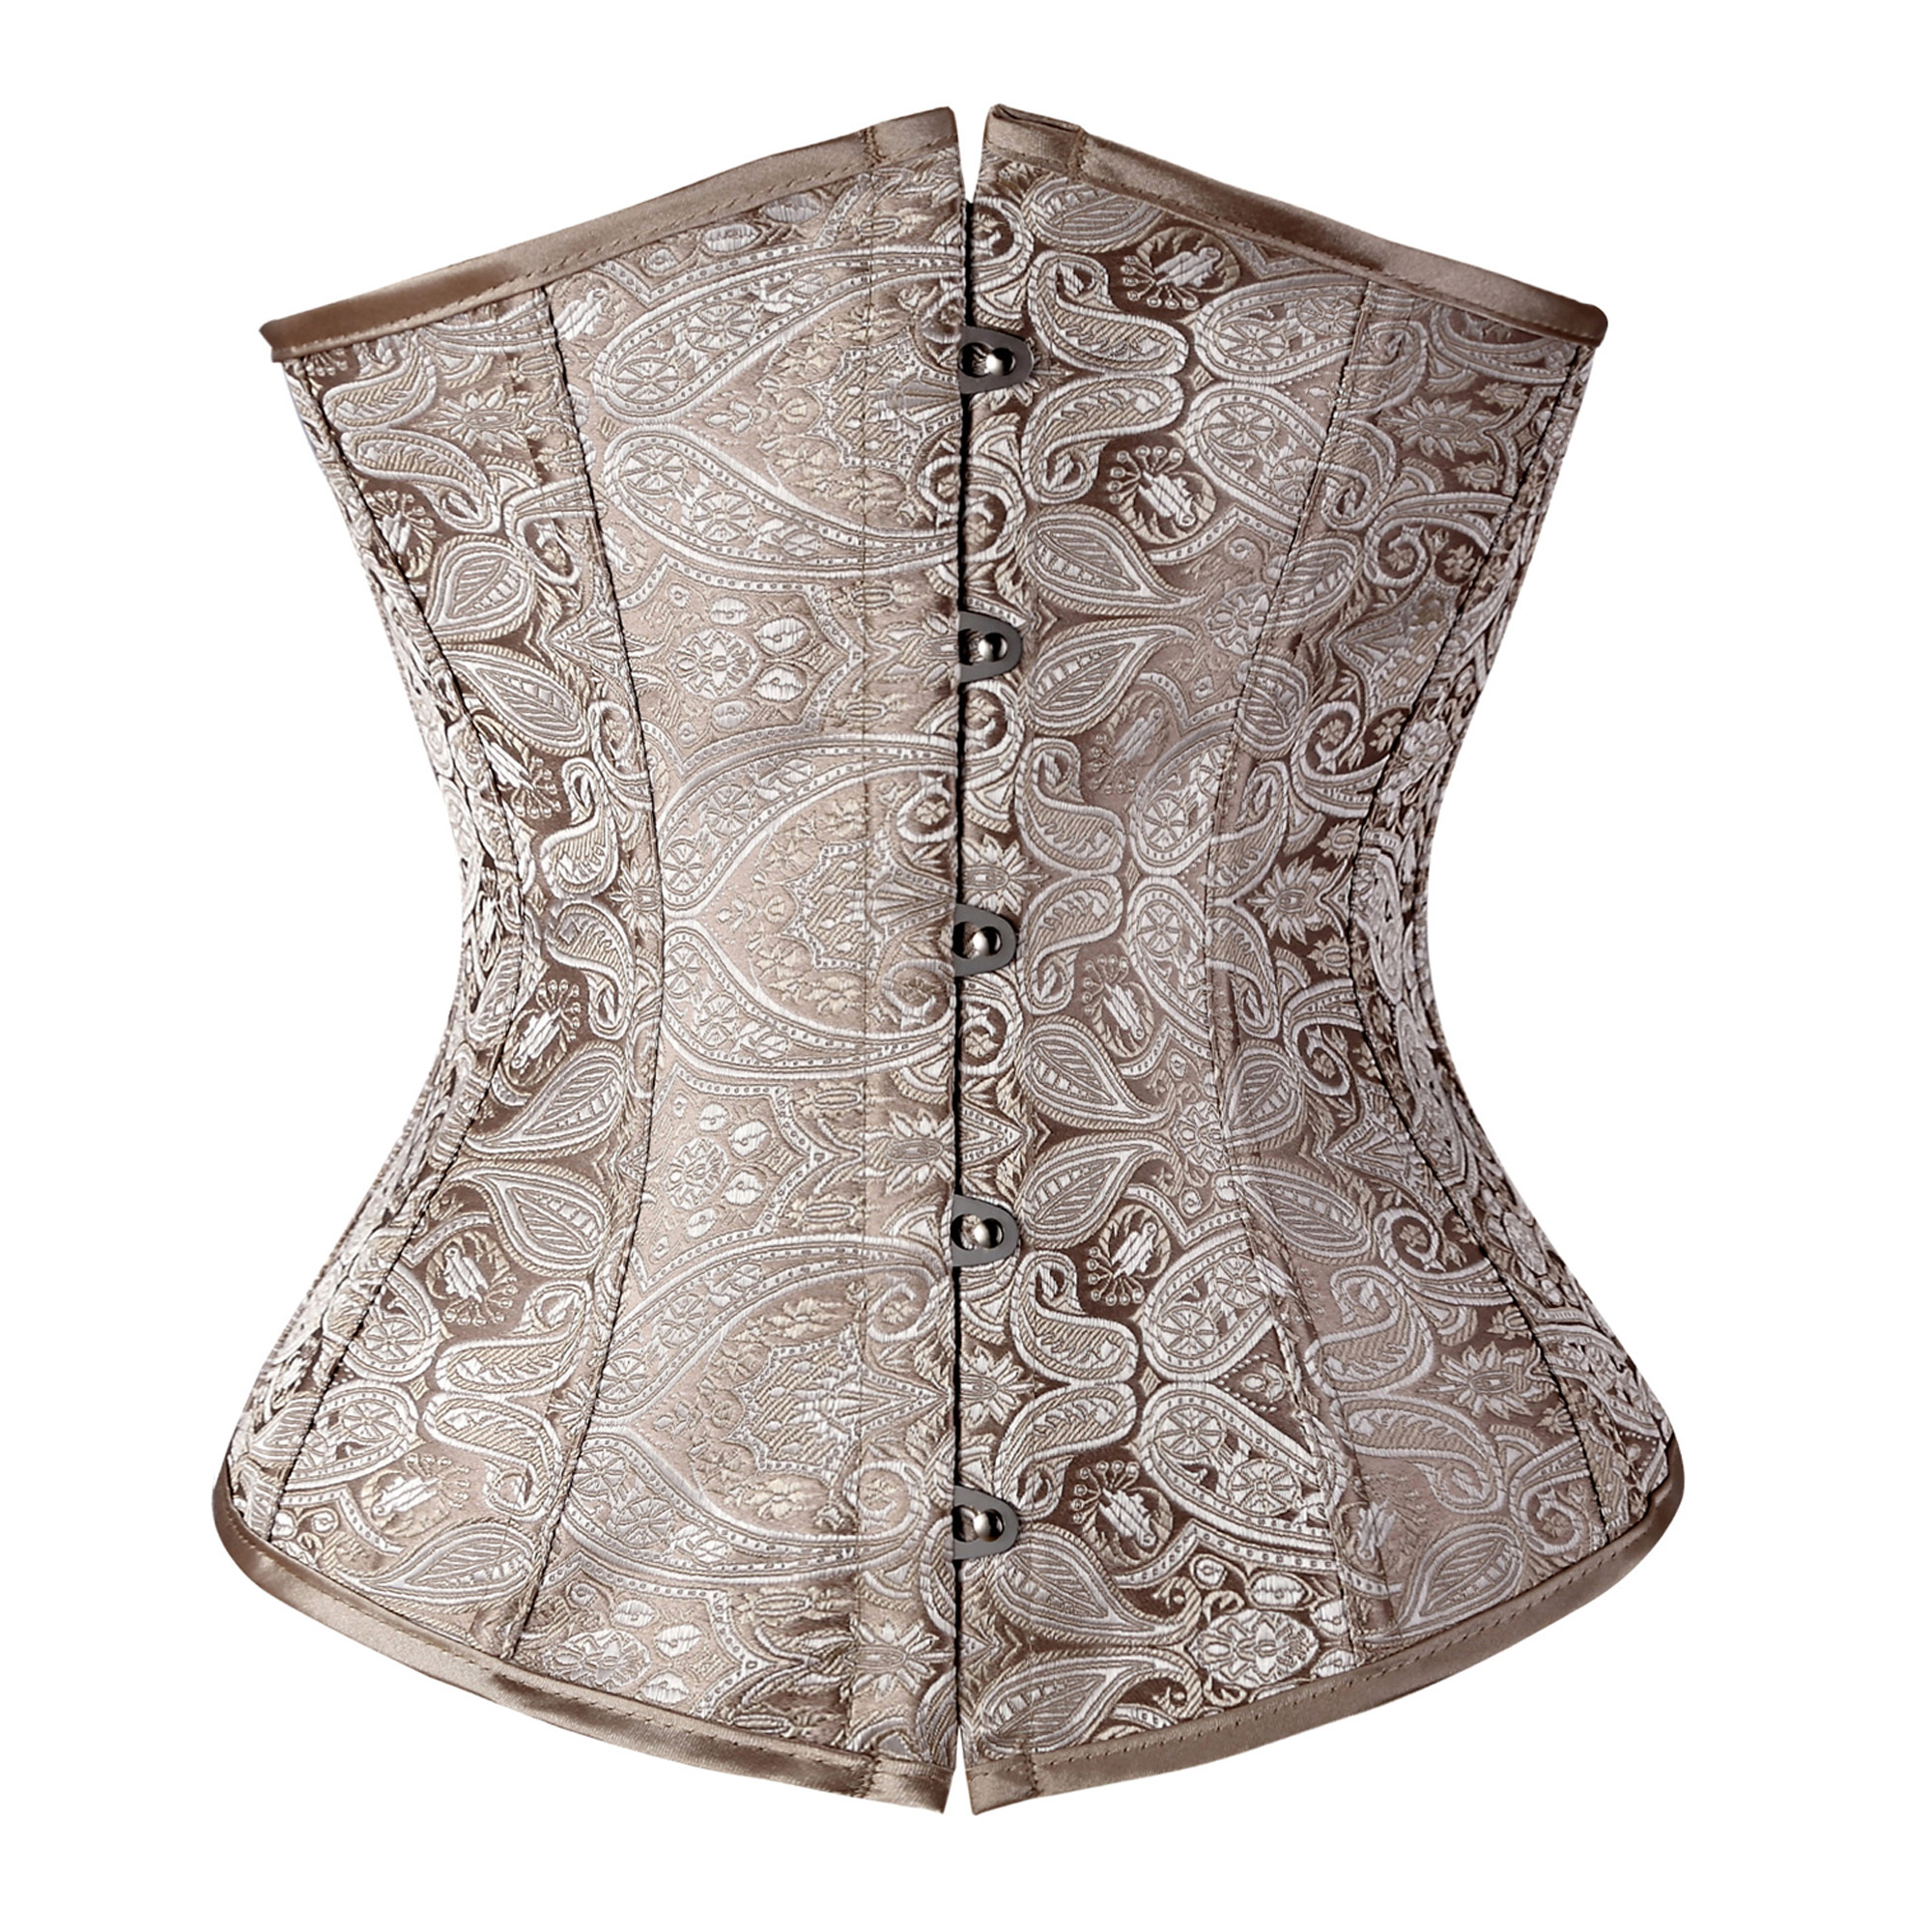 SAYFUT Women Vintage Pattern Knitting Underbust Corset Lumbar Buckle-Up Waist Training Corset